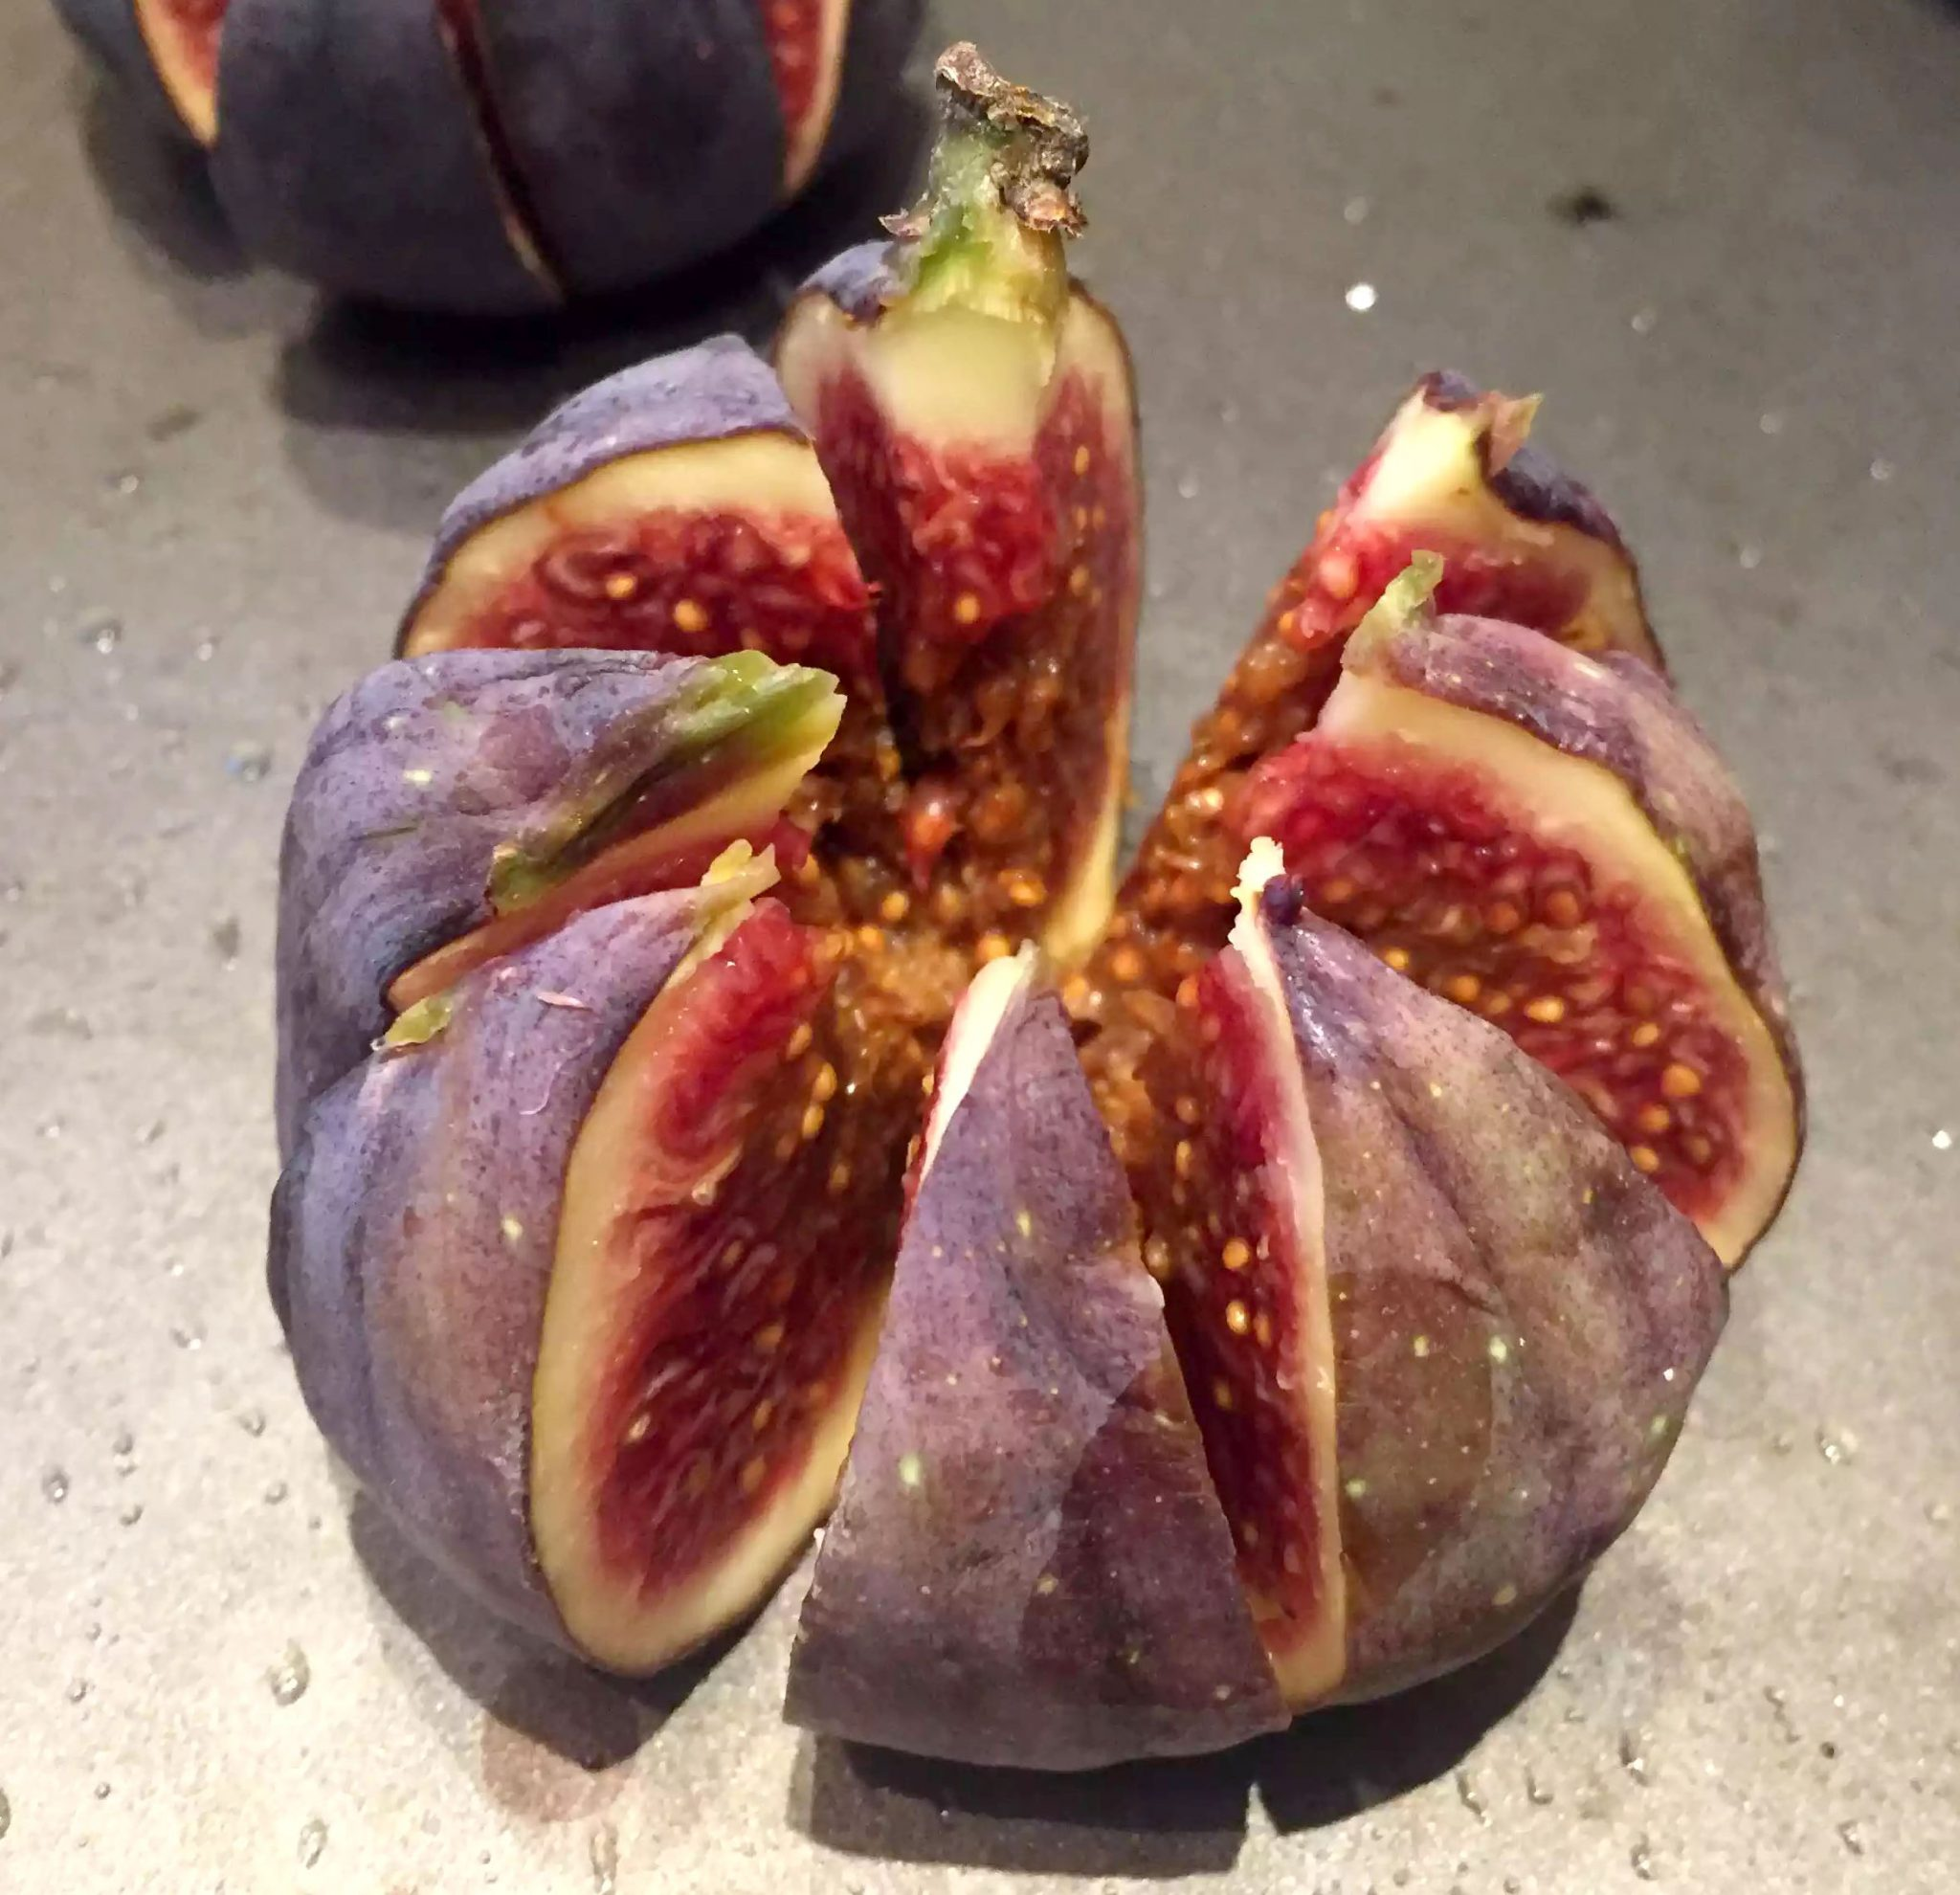 Baked Figs with Goats Cheese & Crispy Prosciutto & pecans - Appetiser, SCD, Paleo, Gluten-Free, Grain-Free, Refined Sugar-Free, Clean Eating